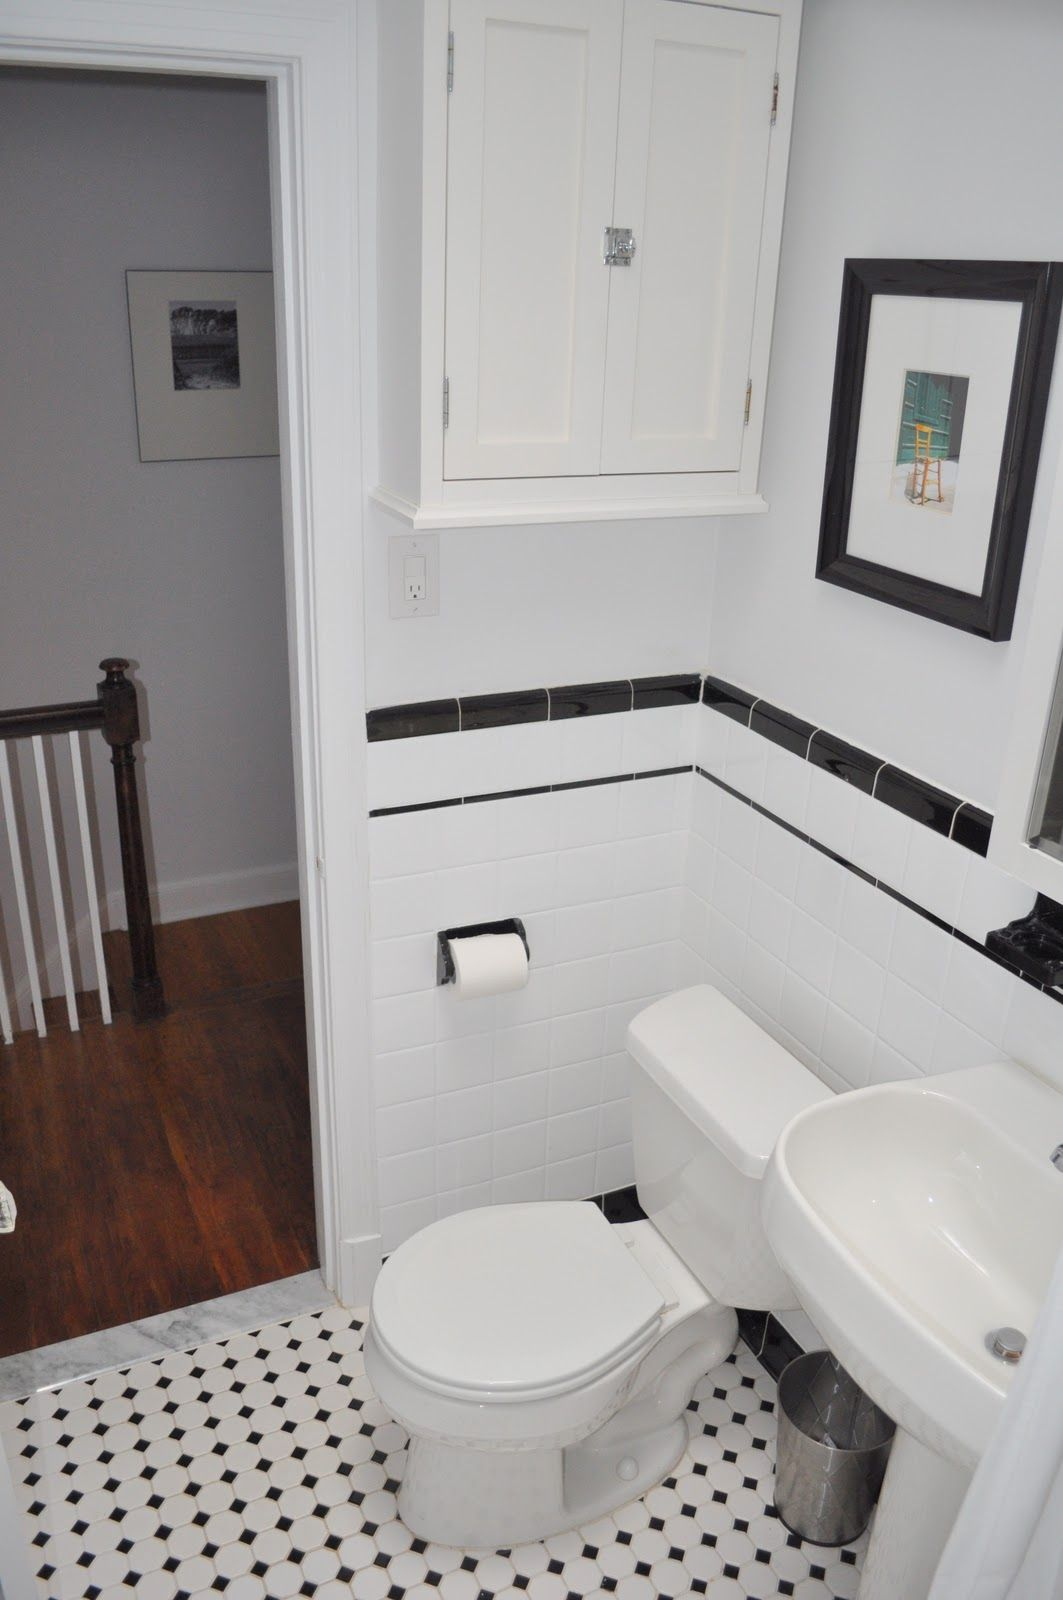 Bathroom Tiles Black And White subway tile bathroom ideas. zamp.co